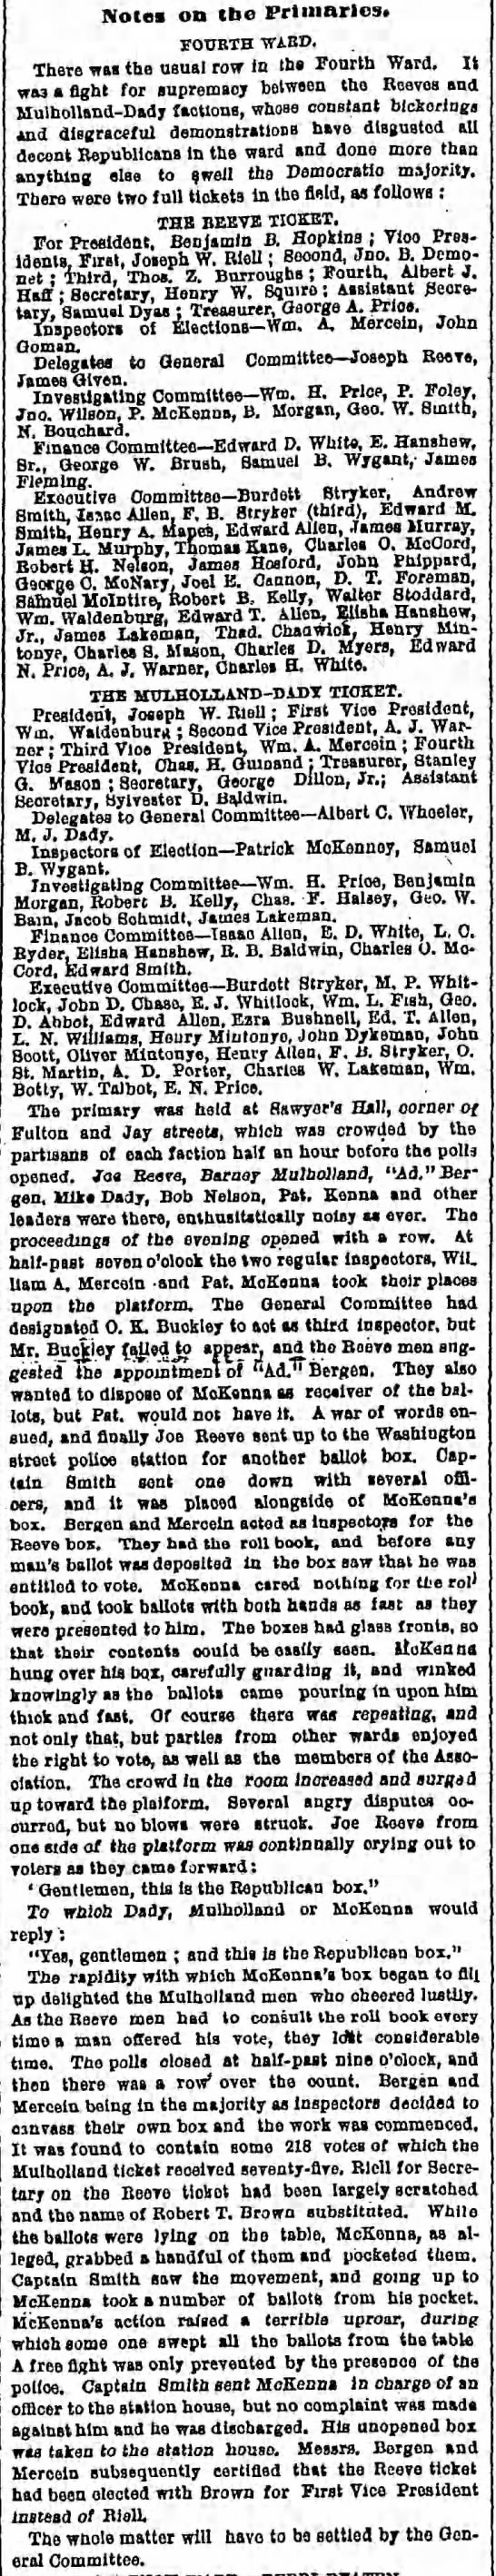 Wednesday, November 28, 1877 - Page 4